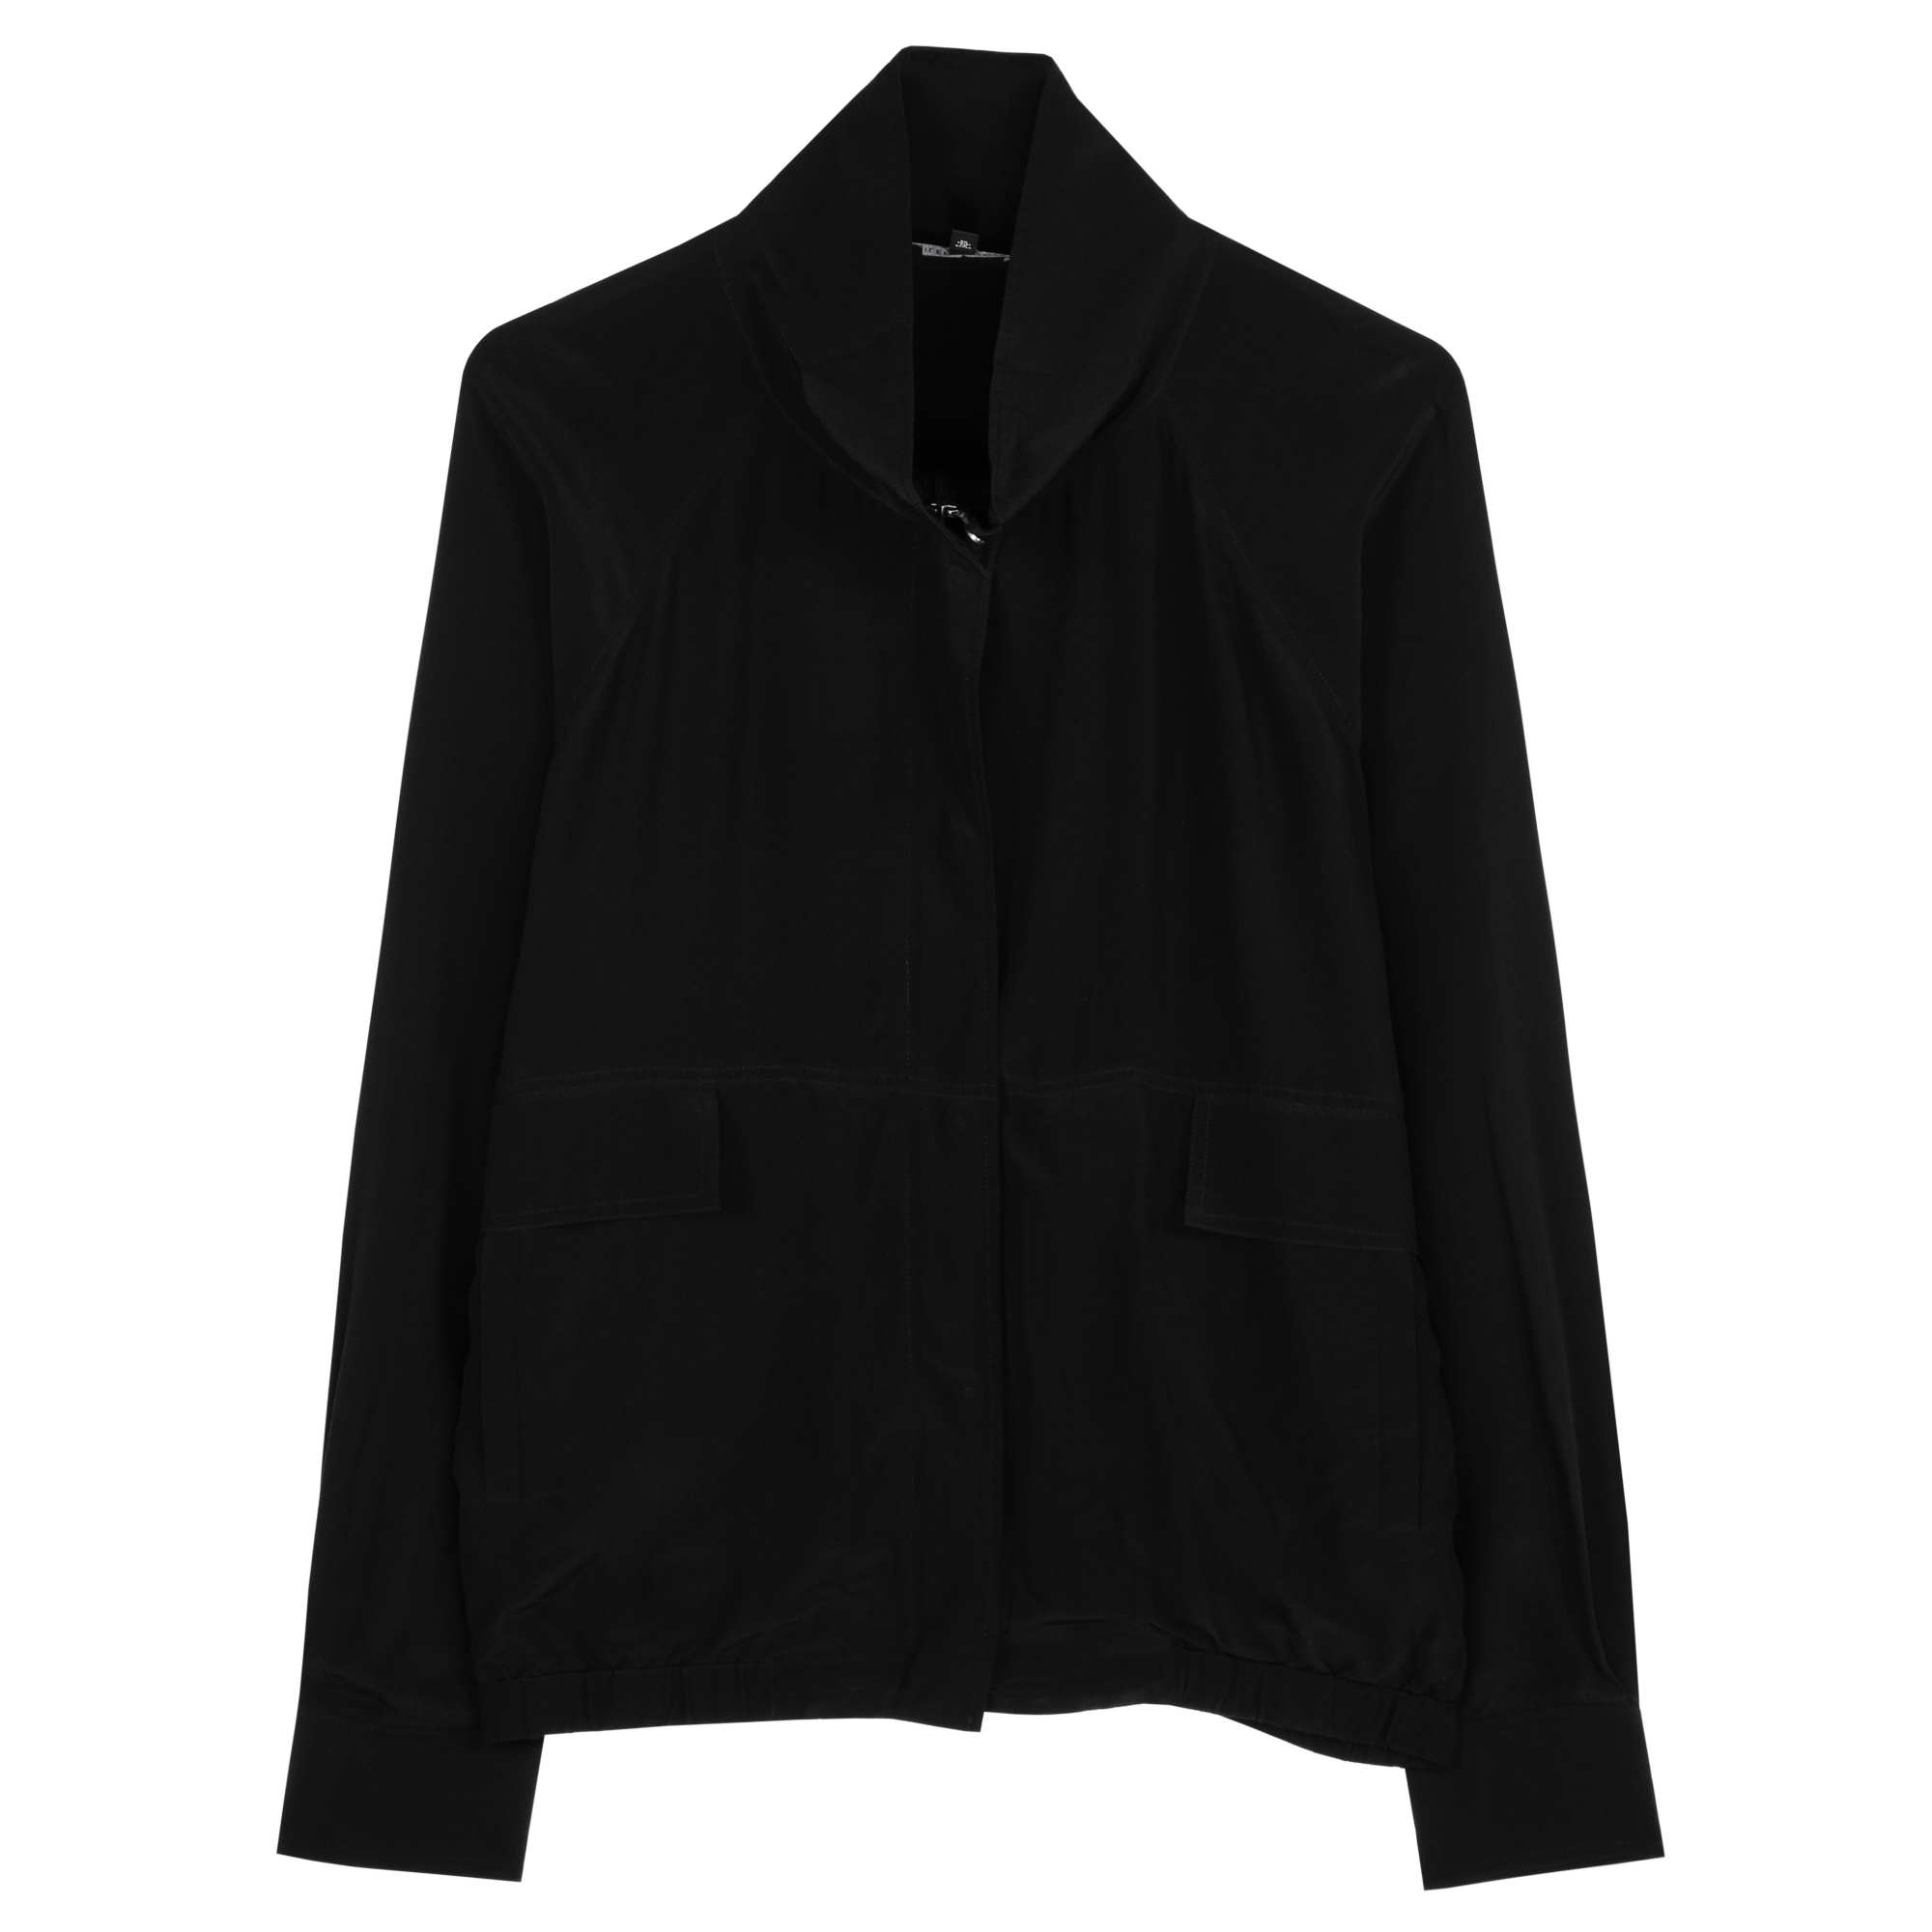 Silk Crepe de Chine Jacket